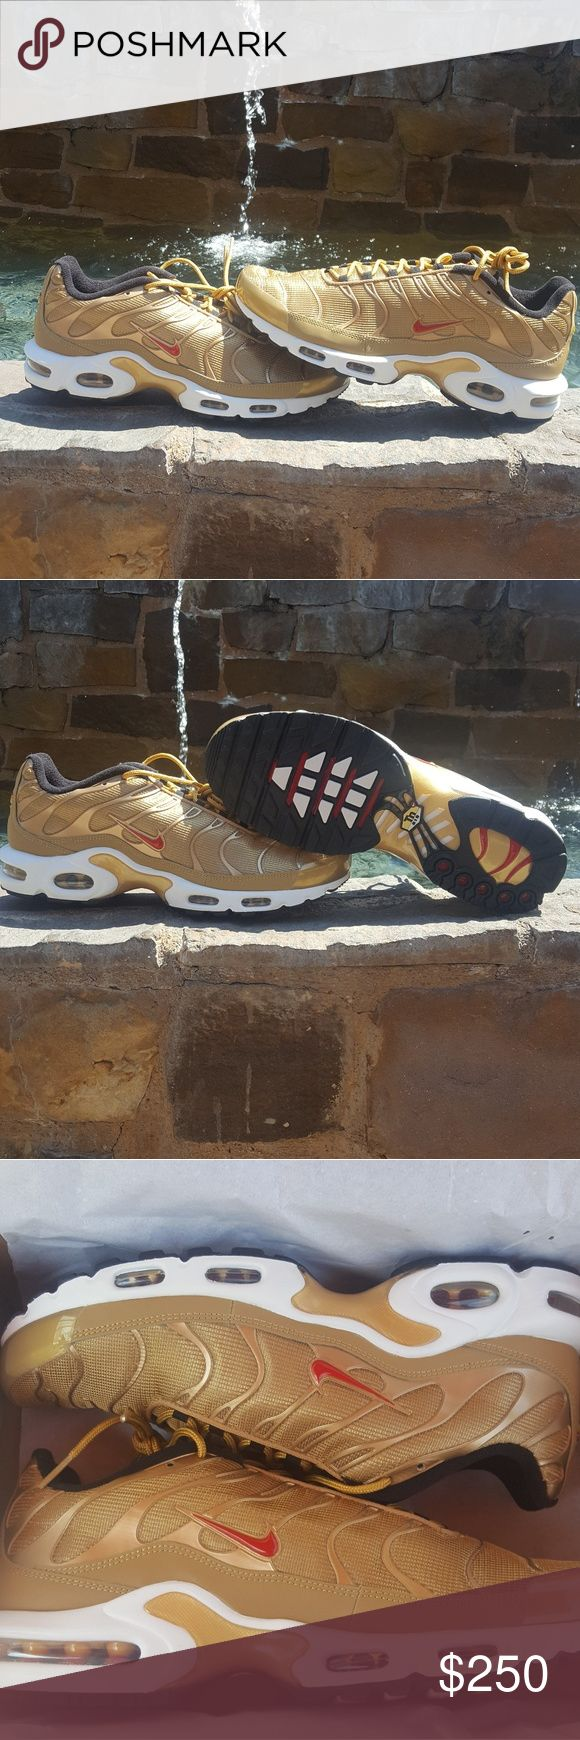 Nike Air Max Plus 95 Metallic Gold Brand new  Men's size 11 Dead stock Nike Shoes Athletic Shoes